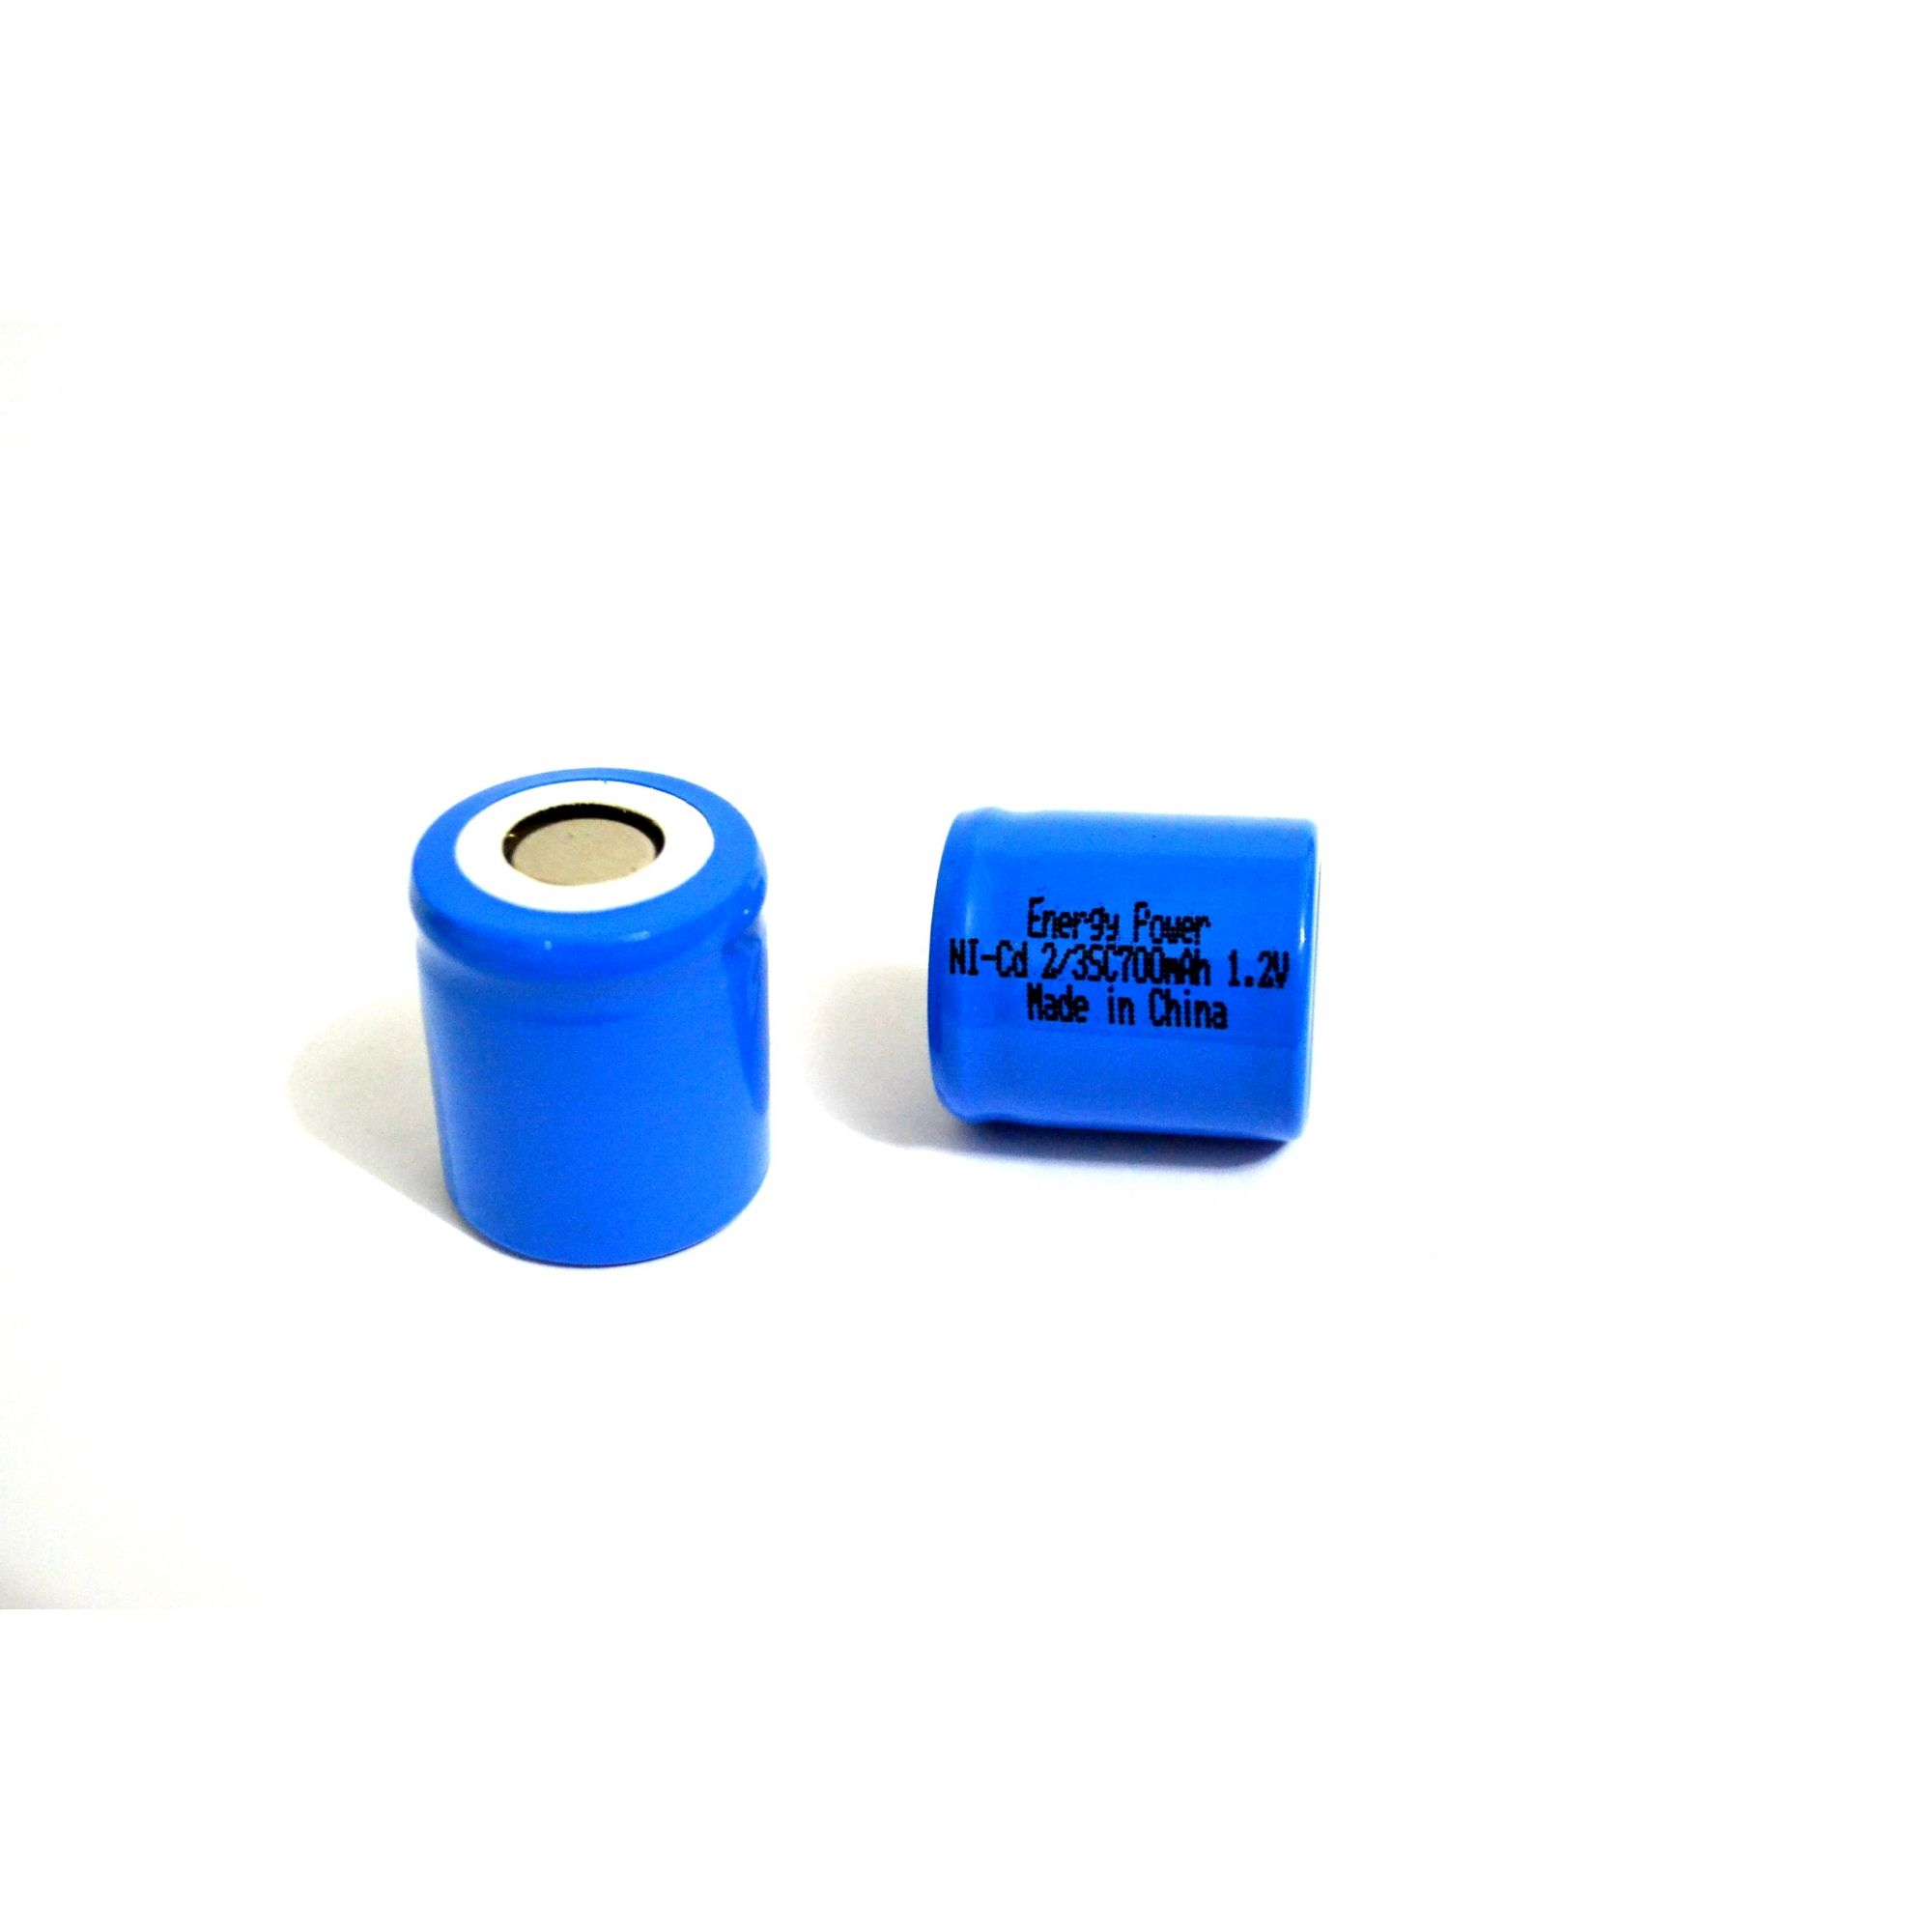 BATERIA ENERGY POWER 2/3SC 700MAH 1,2V NI-CD